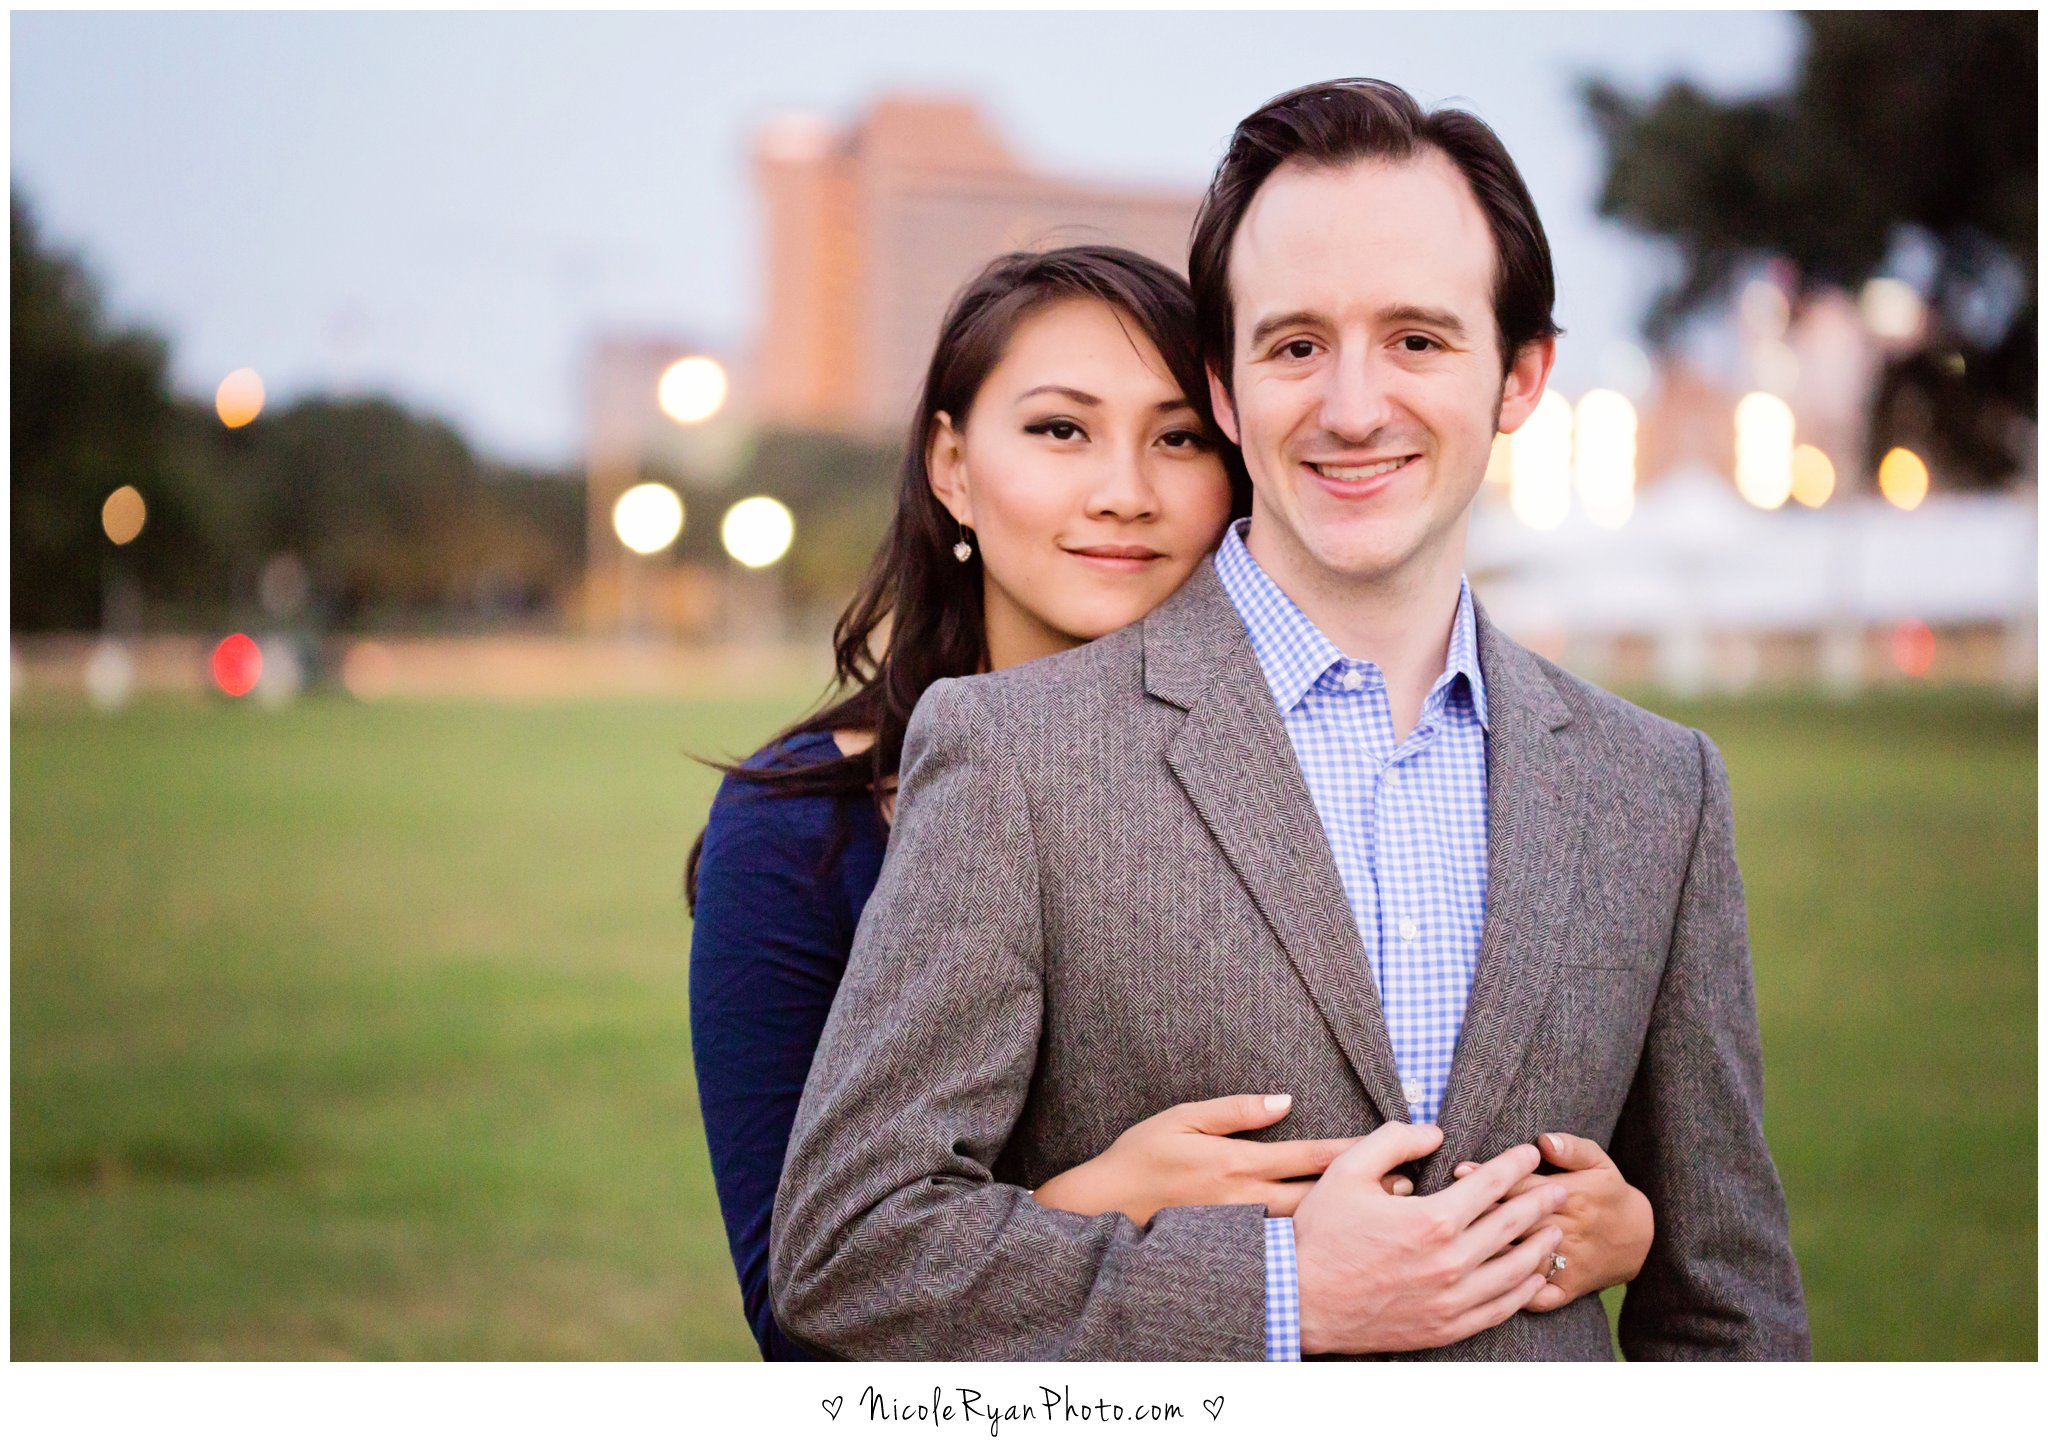 Engagement Portraits in Austin, TX | Butler Park, Mozart's Coffee, The Frisco